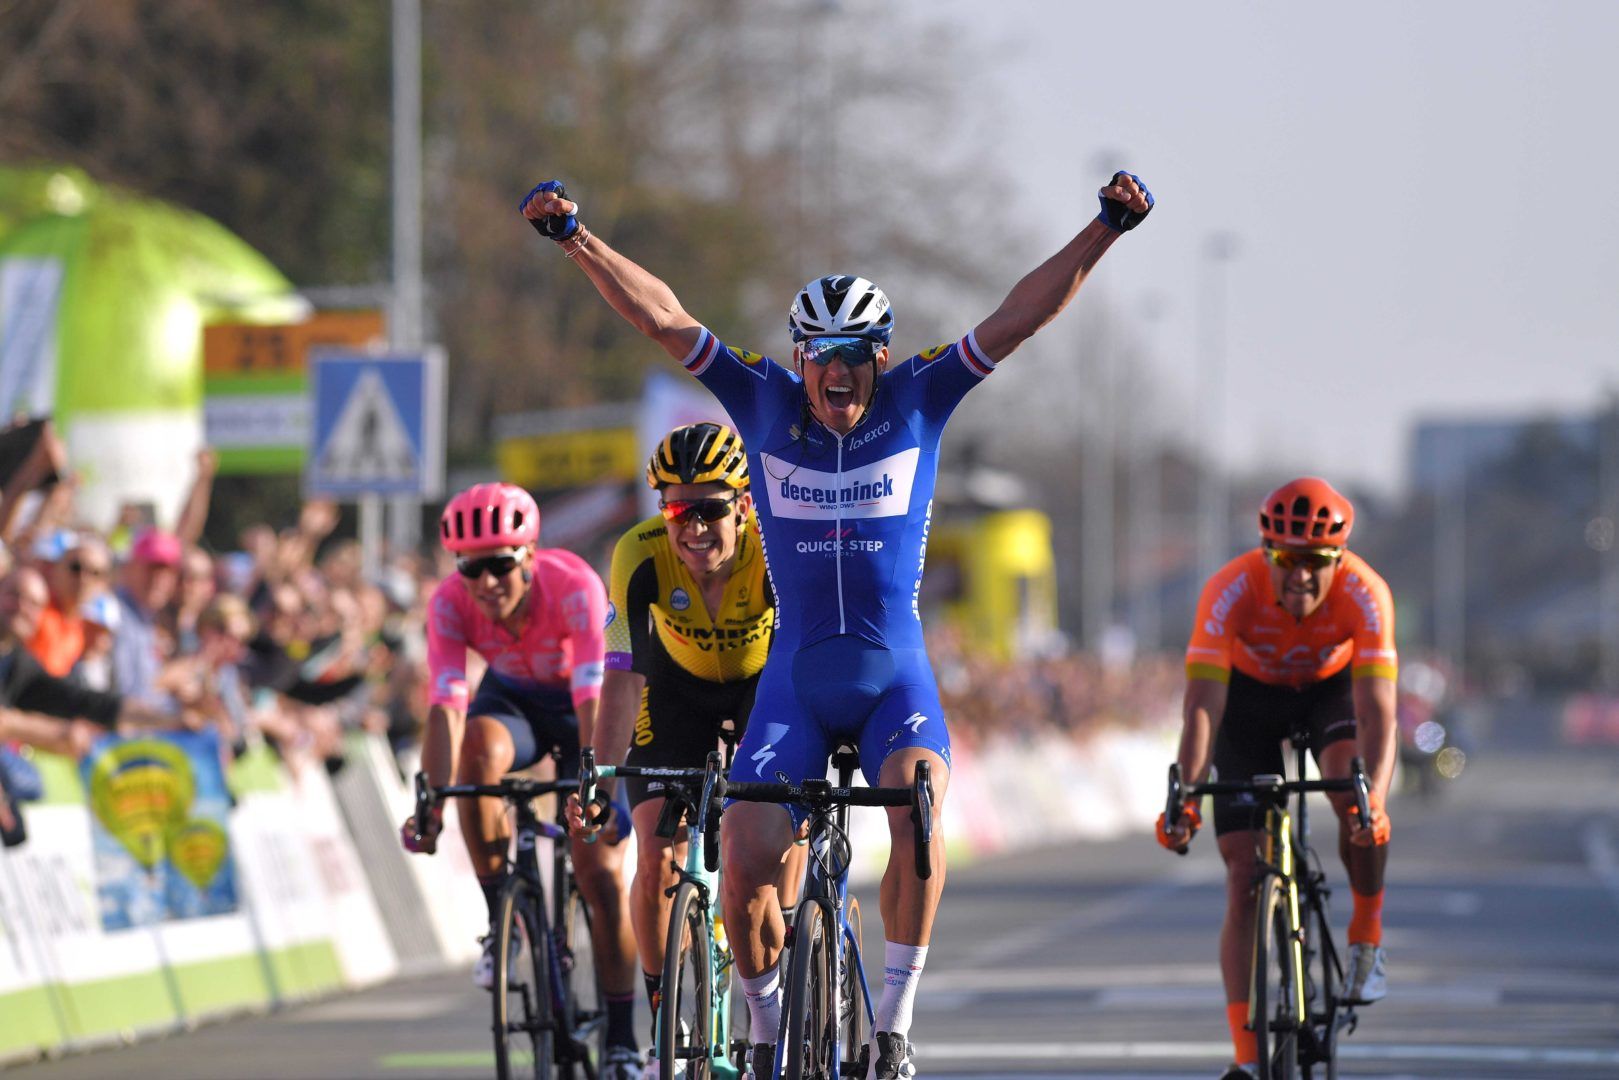 HARELBEKE, BELGIUM - MARCH 29: Arrival / Zdeněk Štybar of Czech Republic and Team Deceuninck - Quick-Step Celebration / Alberto Bettiol of Italy and Team Ef Education First / Greg Van Avermaet of Belgium and Ccc Team / Wout Van Aert of Belgium and Team Jumbo - Visma / during the 62nd E3 Harelbeke 2019 a 203,9km race from Harelbeke to Harelbeke / #E3BinckBankClassic / on March 29, 2019 in Harelbeke, Belgium. (Photo by Tim de Waele/Getty Images)